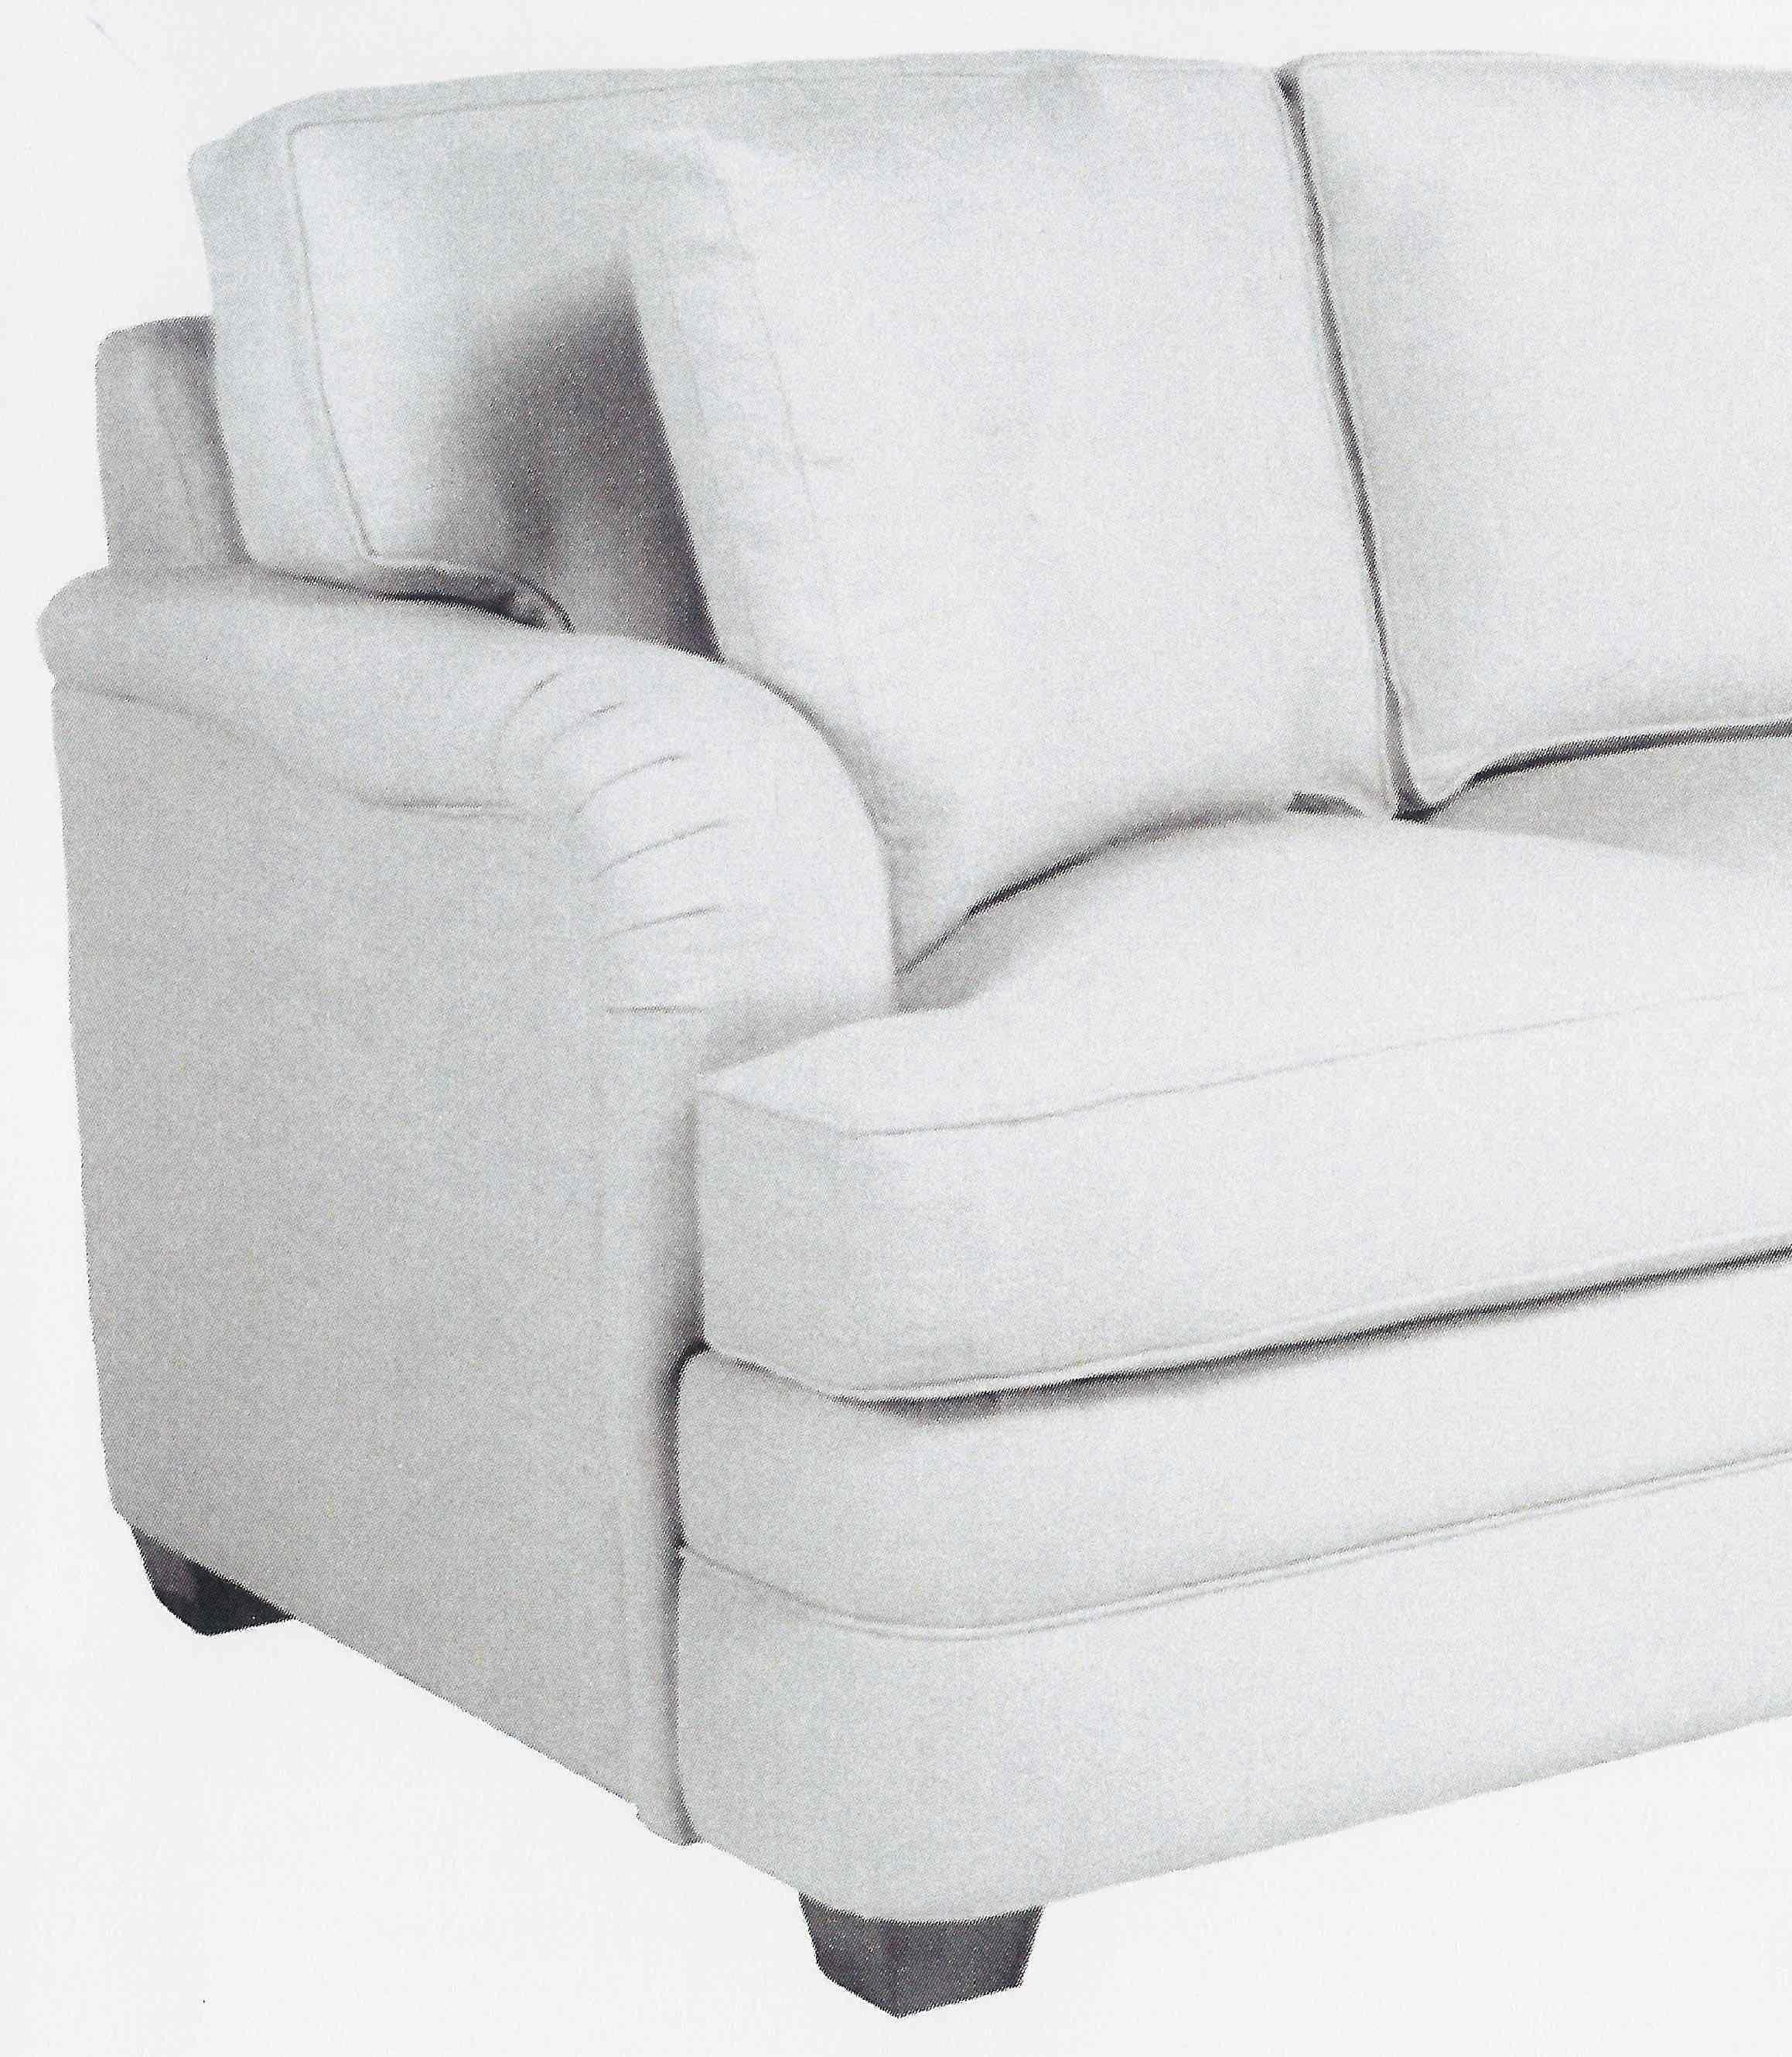 Furniture & Rug: Charming Slipcovers For Sofas With Cushions Regarding Slipcovers For 3 Cushion Sofas (Image 2 of 20)